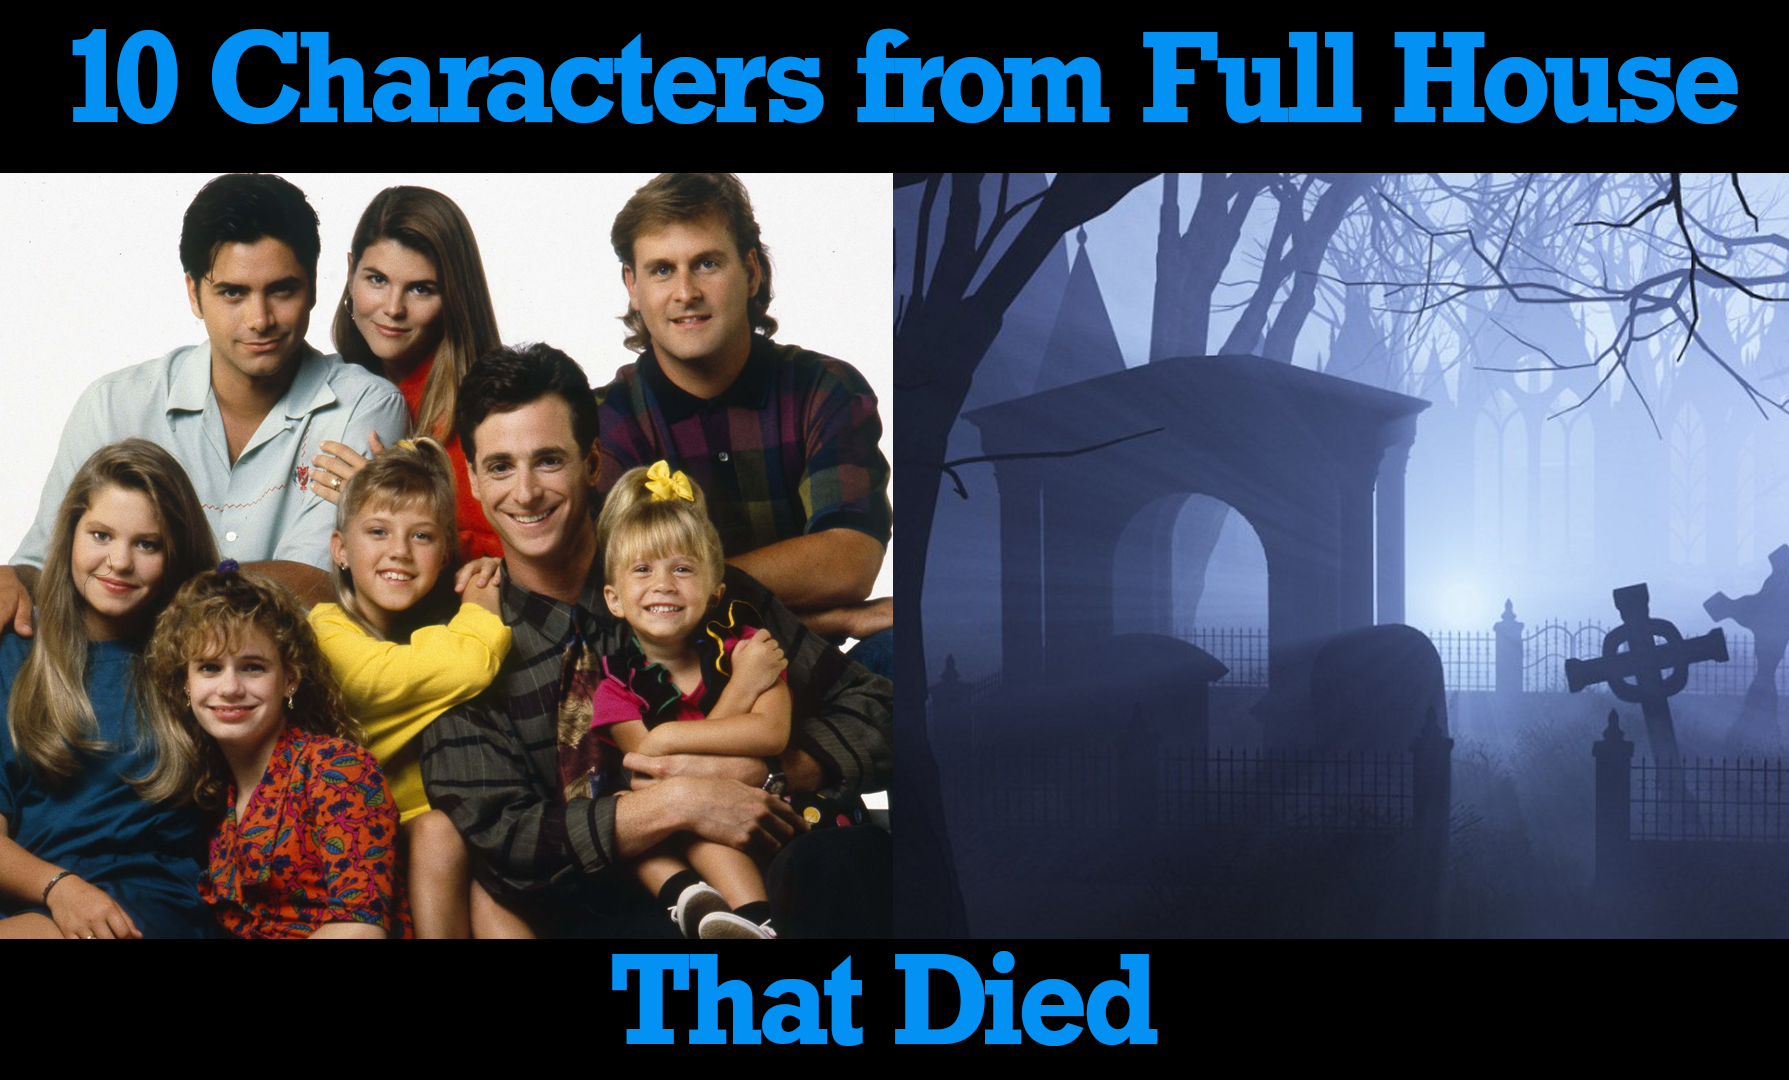 10 Characters from Full House